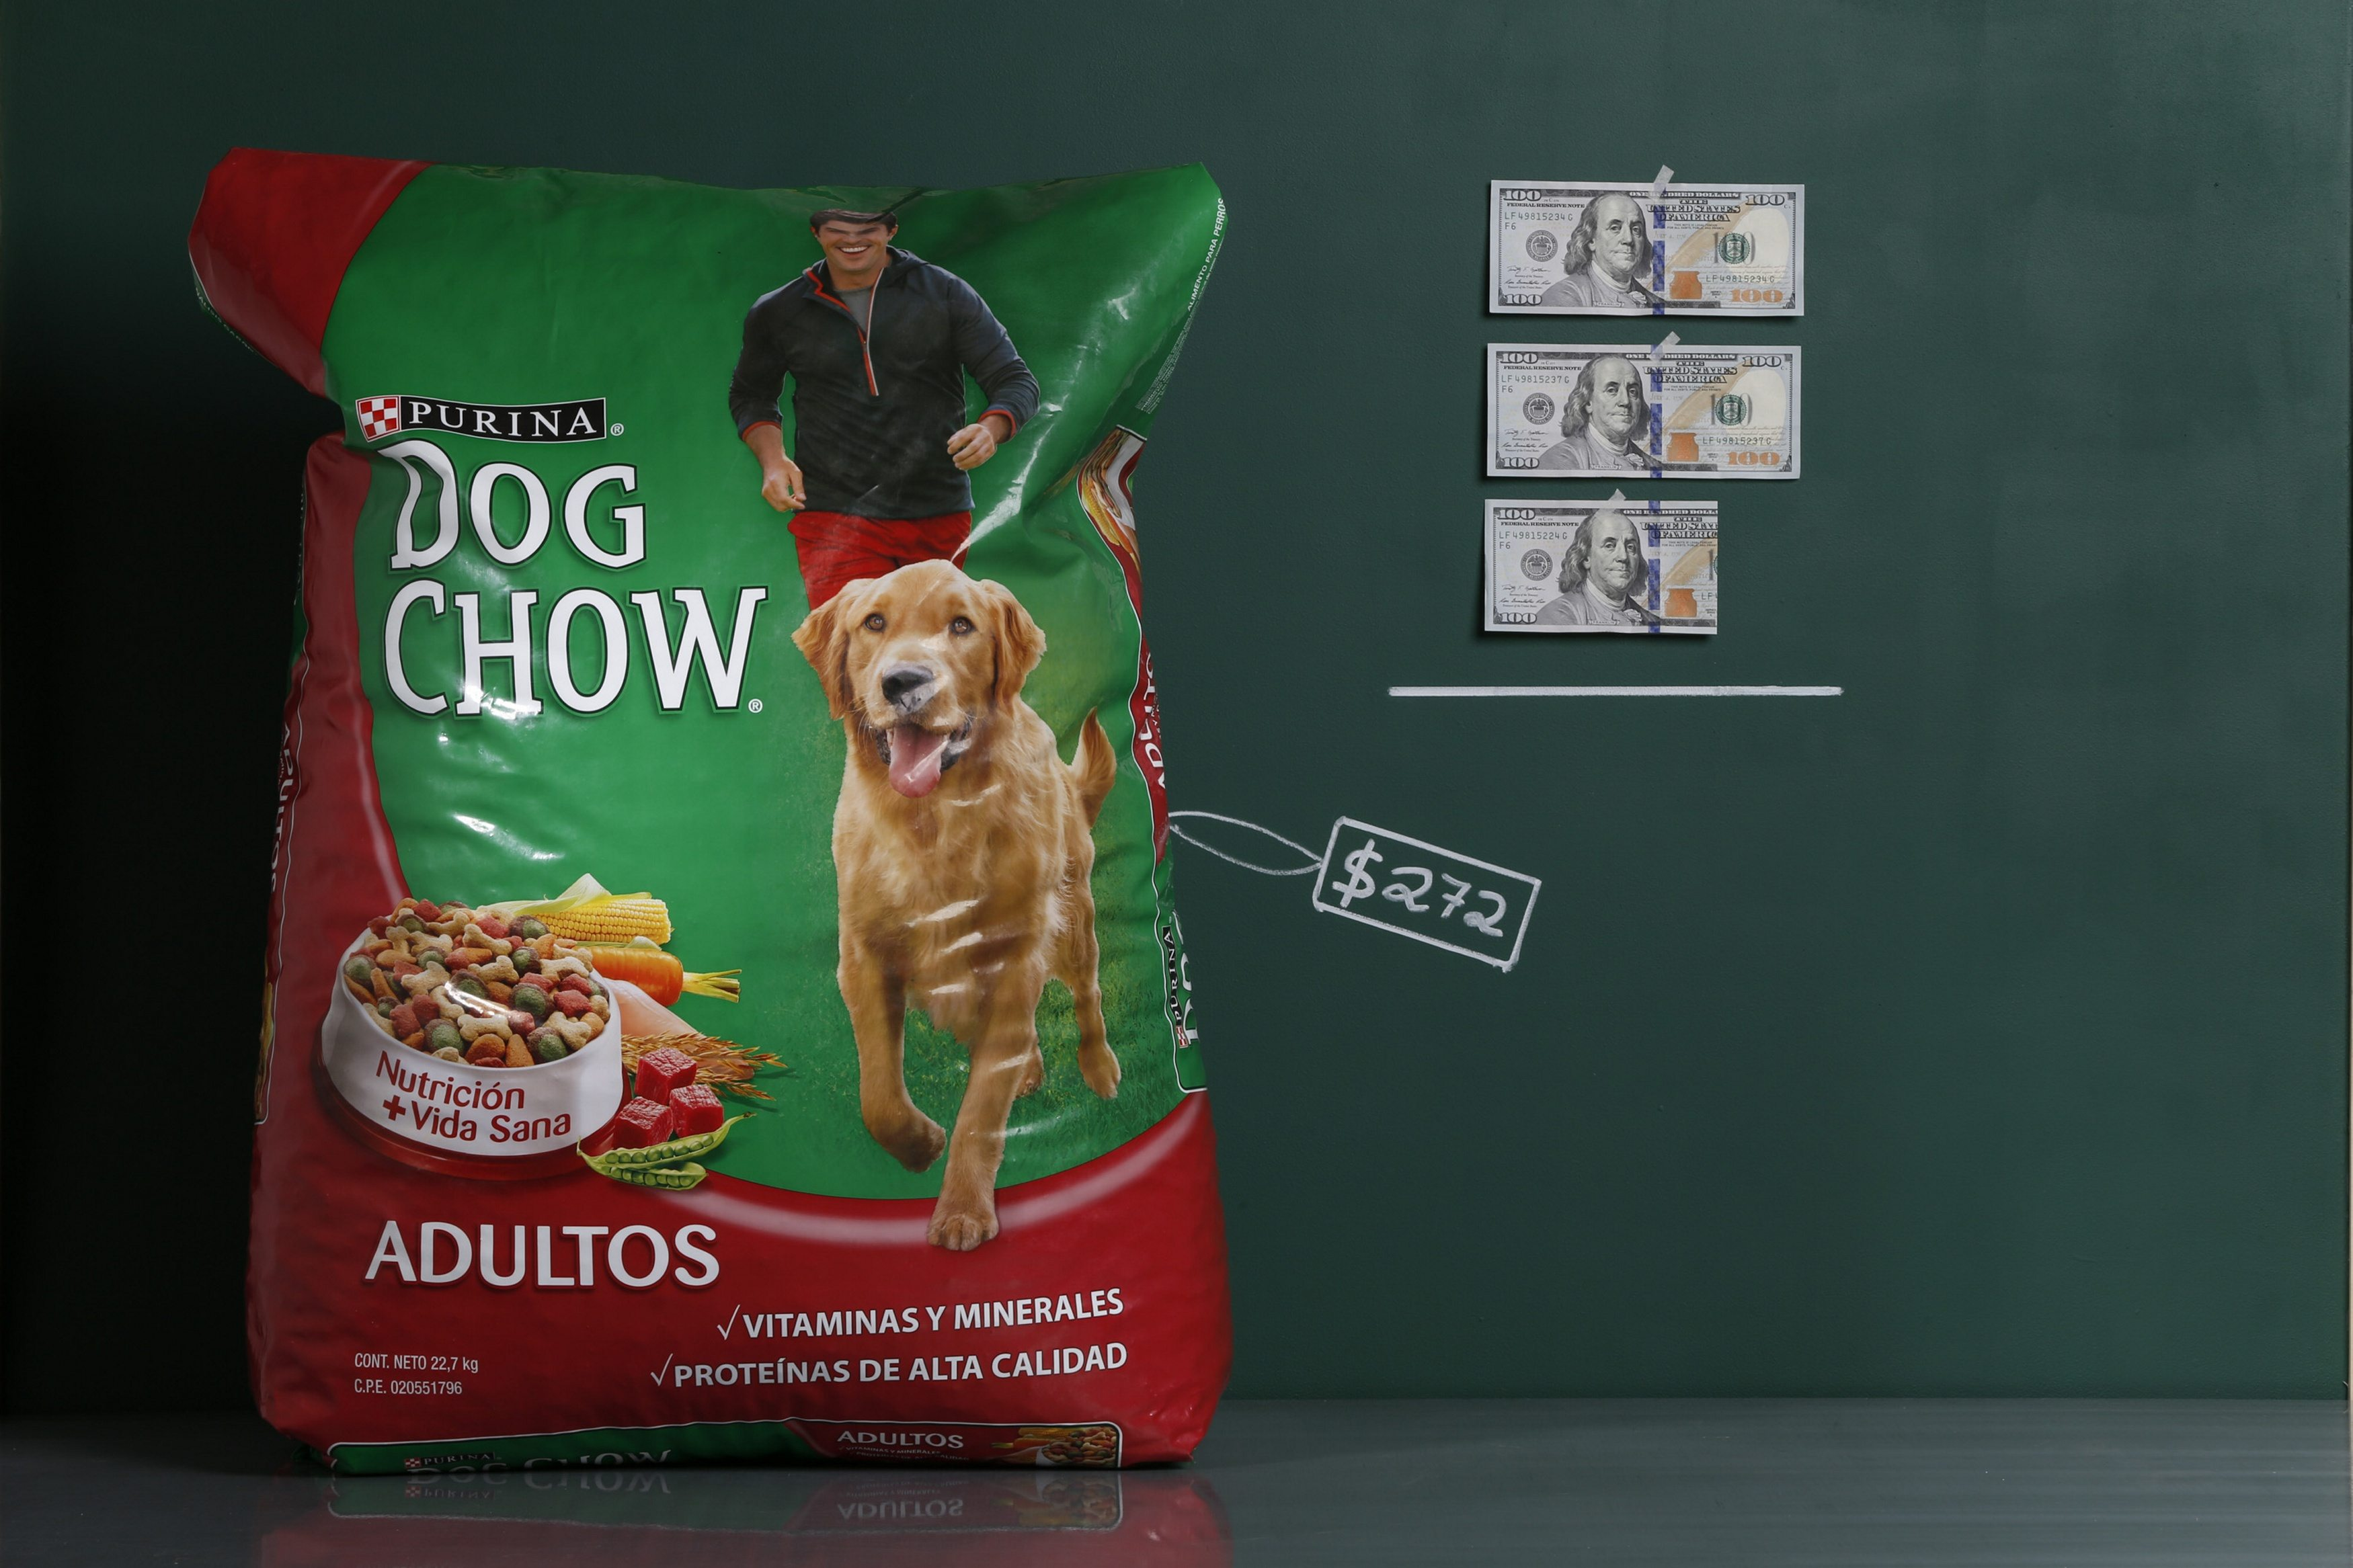 A 50 lb. (22.7 kg) bag of Purina Dog Chow as photographed with an illustrative price tag of $272 in Caracas